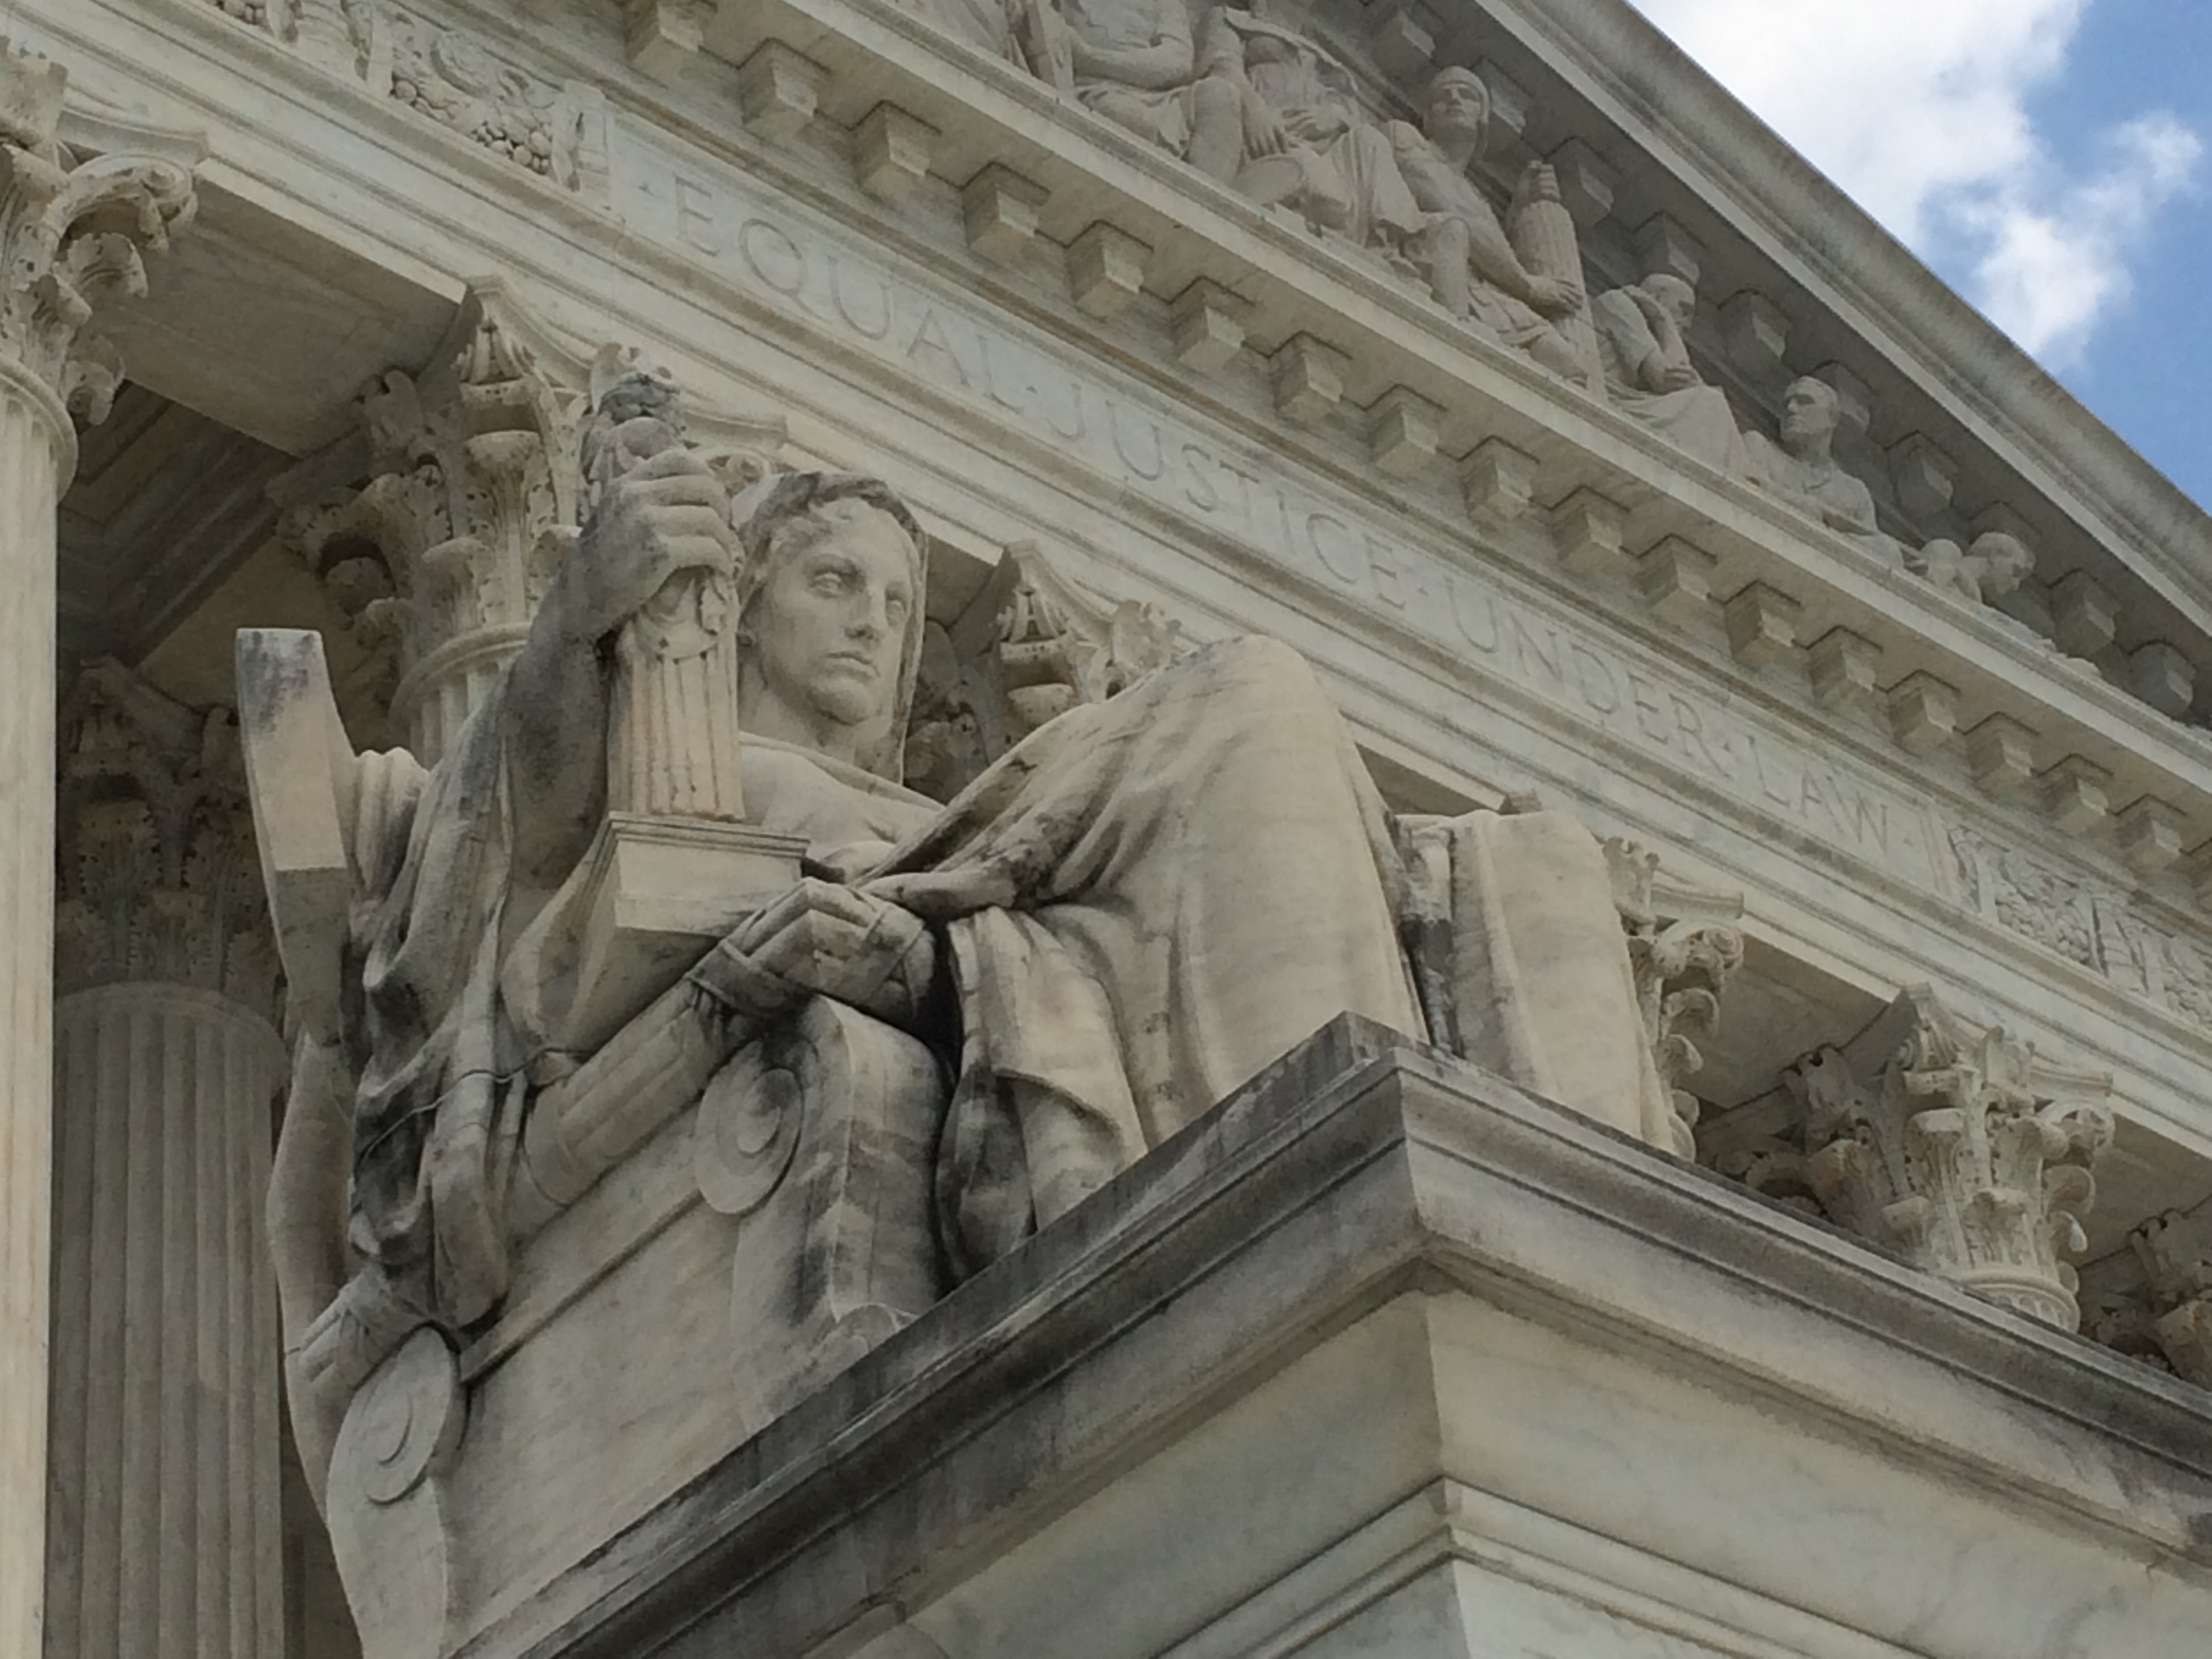 Courthouse Steps: What Does the Supreme Court's Decision in Apple v. Pepper Mean for Antitrust Law and the U.S. Economy?